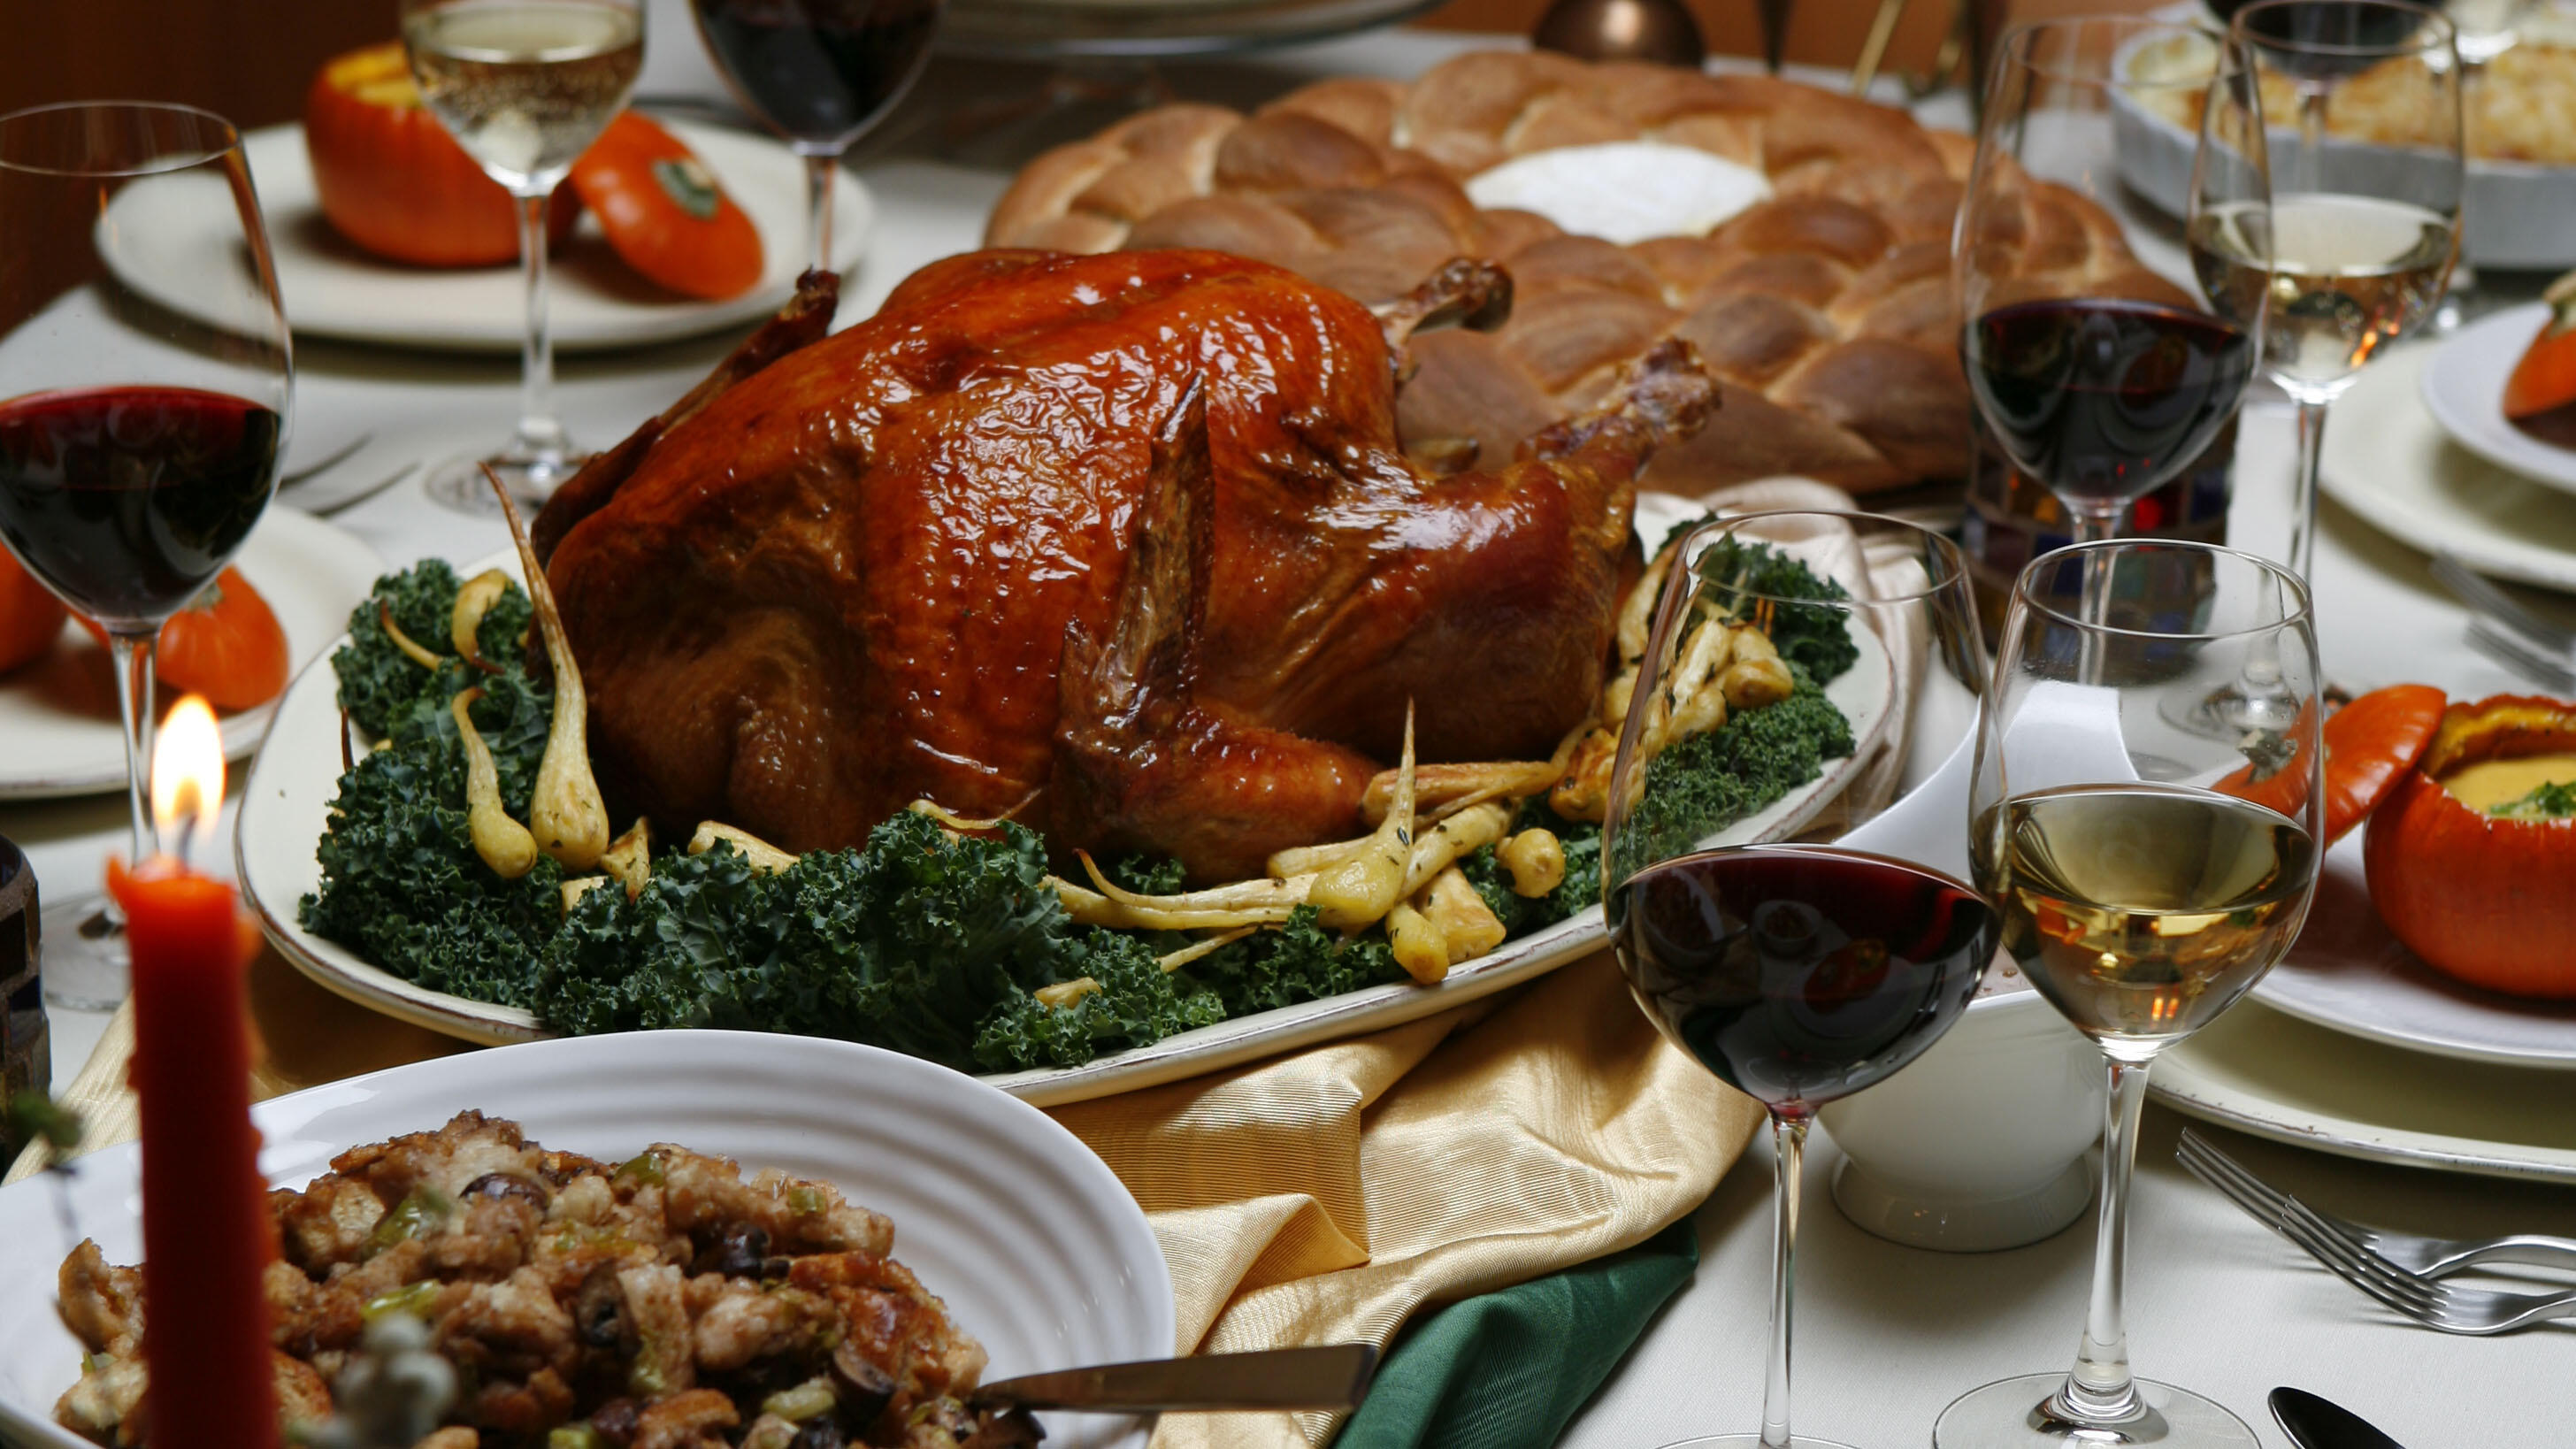 A feast for thanksgiving dinner, photographed in the LAT studio, Friday, Nov. 2, 2007.  (Photo by Jay L. Clendenin/Los Angeles Times via Getty Images)